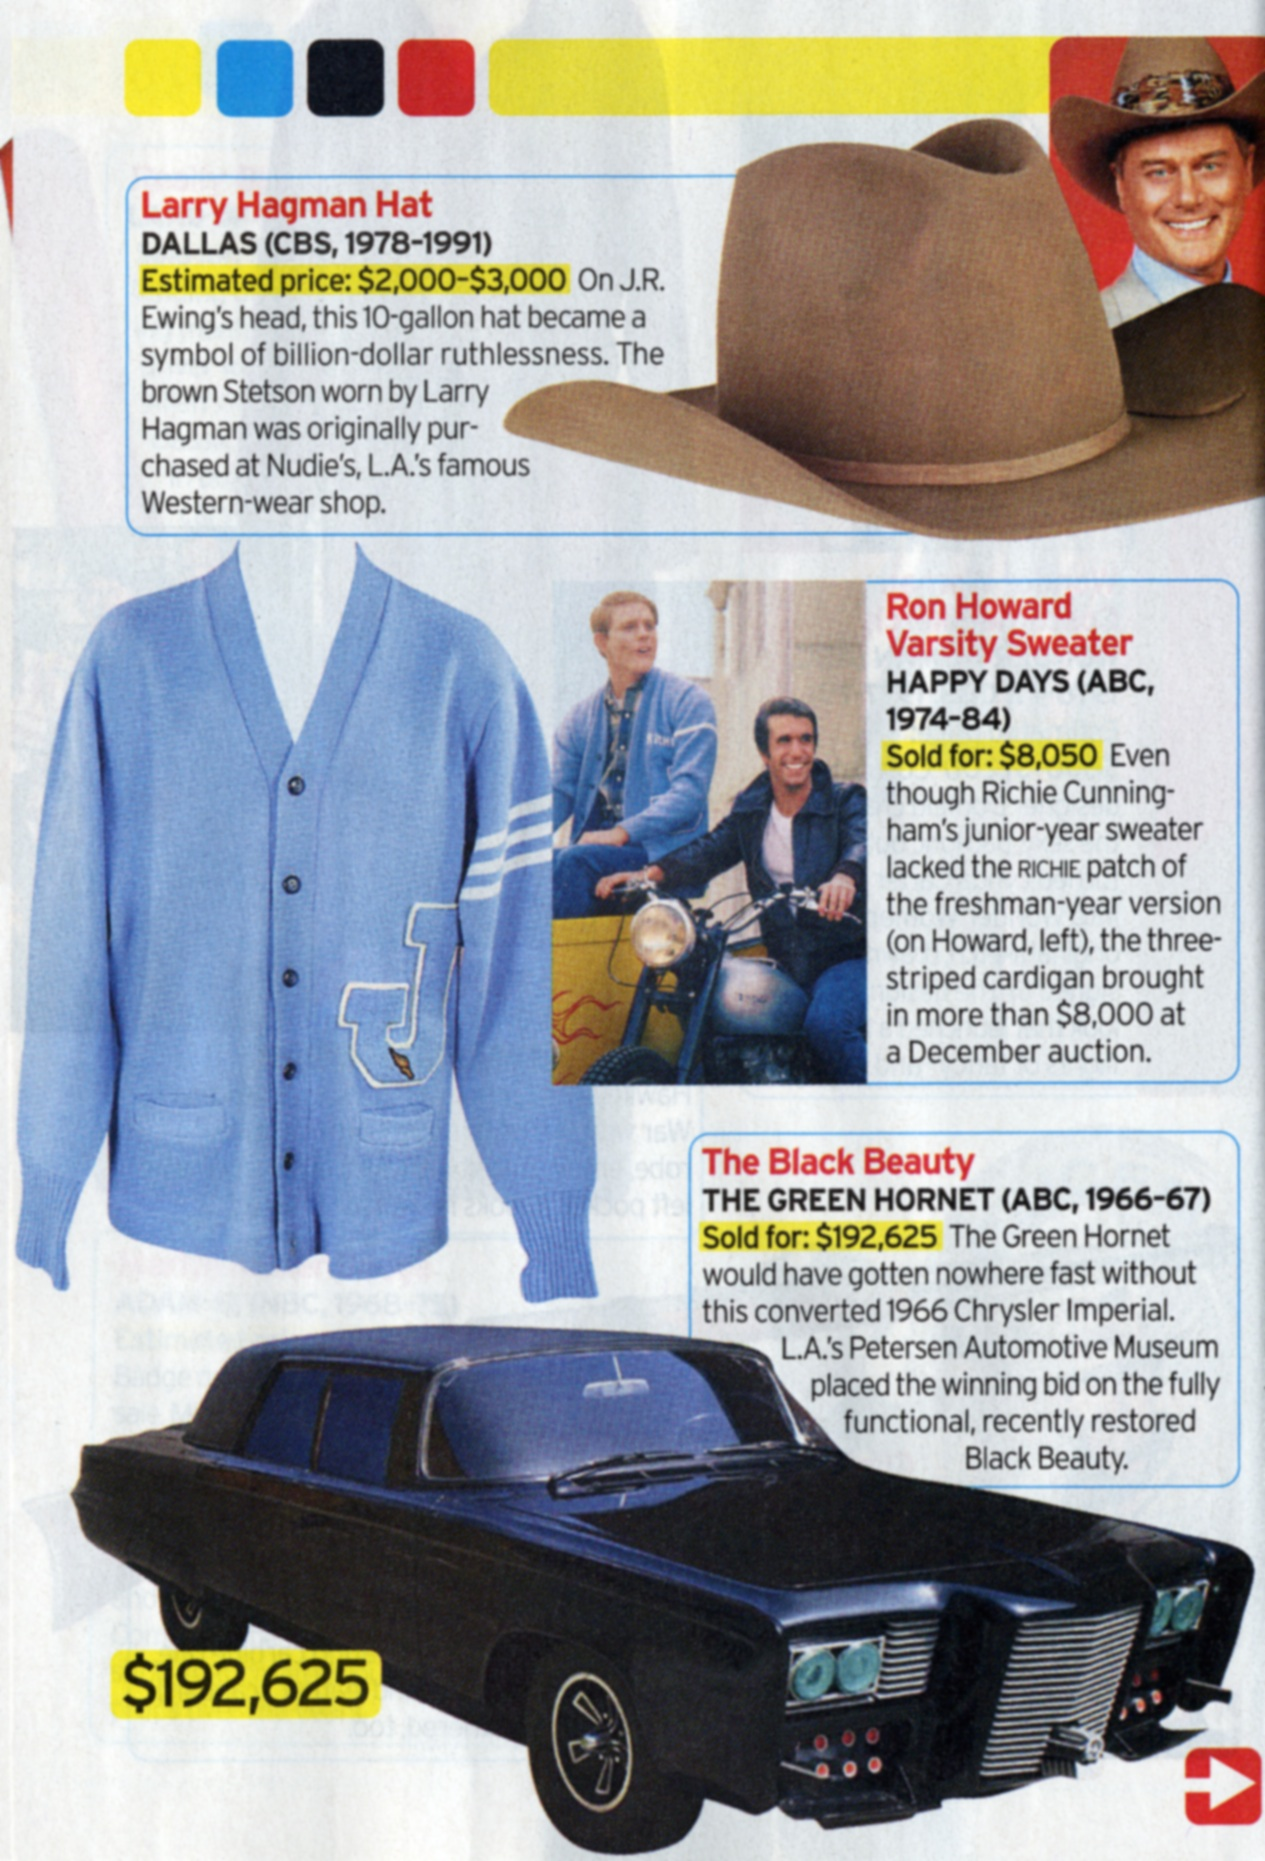 TV Guide article about Larry Hagman's Hat, Ron Howard's Varsity Sweater, and black beauty